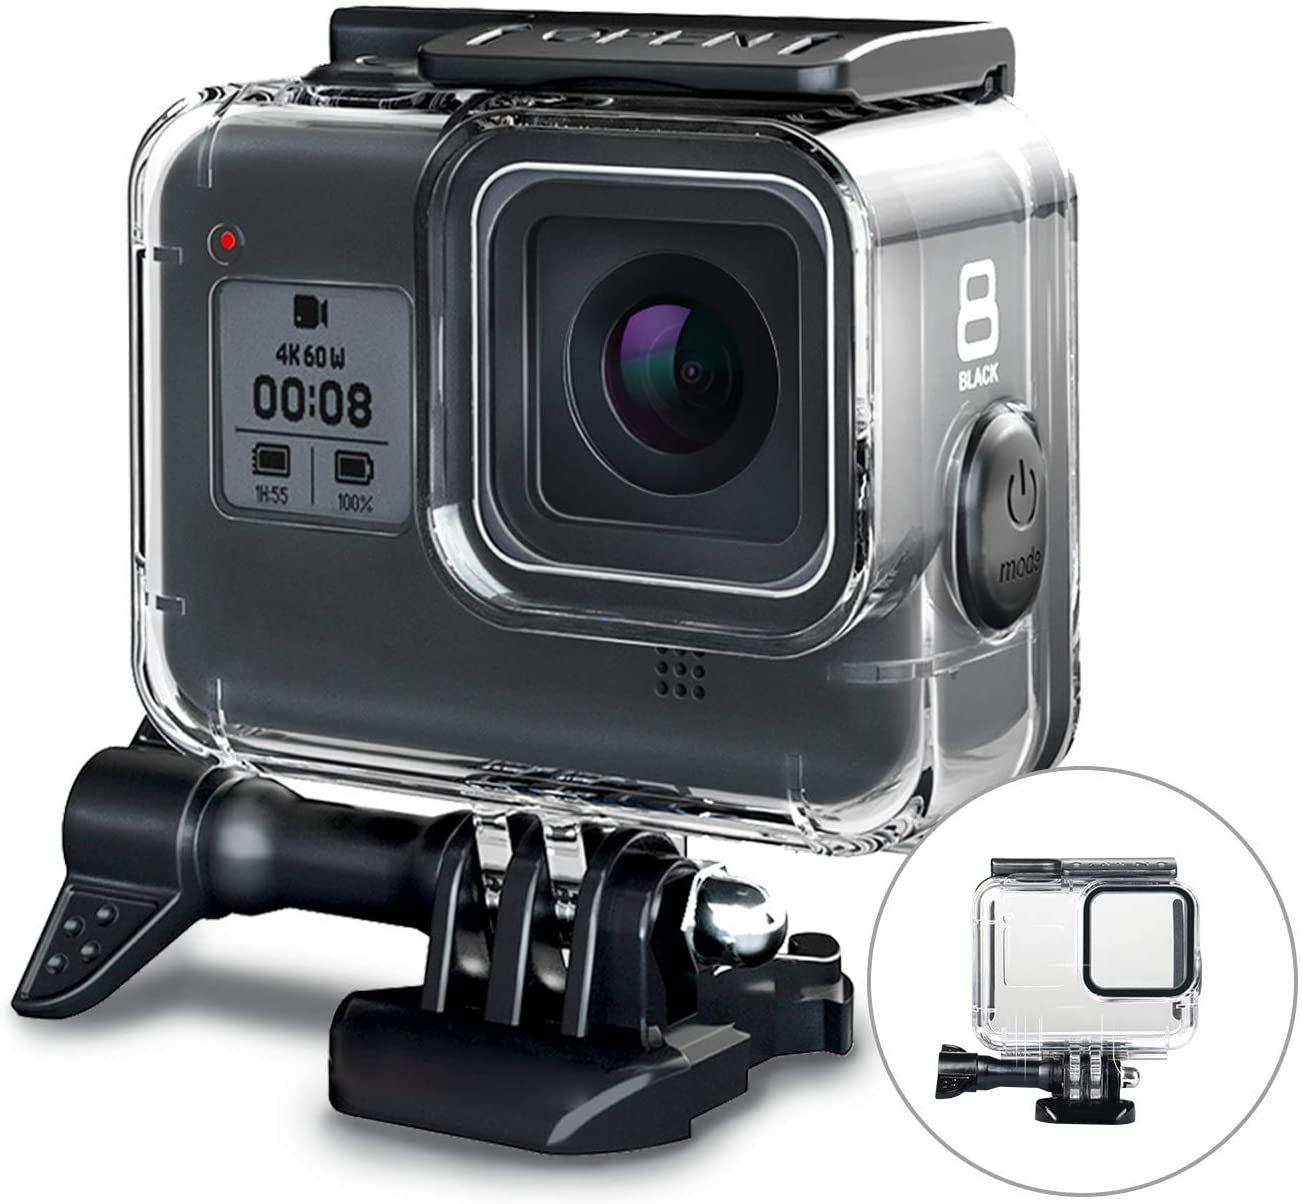 FINEST+ 60m Waterproof Housing Case for GoPro Hero 8 Black Diving Protective Housing Shell with Bracket Accessories for Go Pro Hero8 Action Came Rubber Material Pins Protect The Power Botton